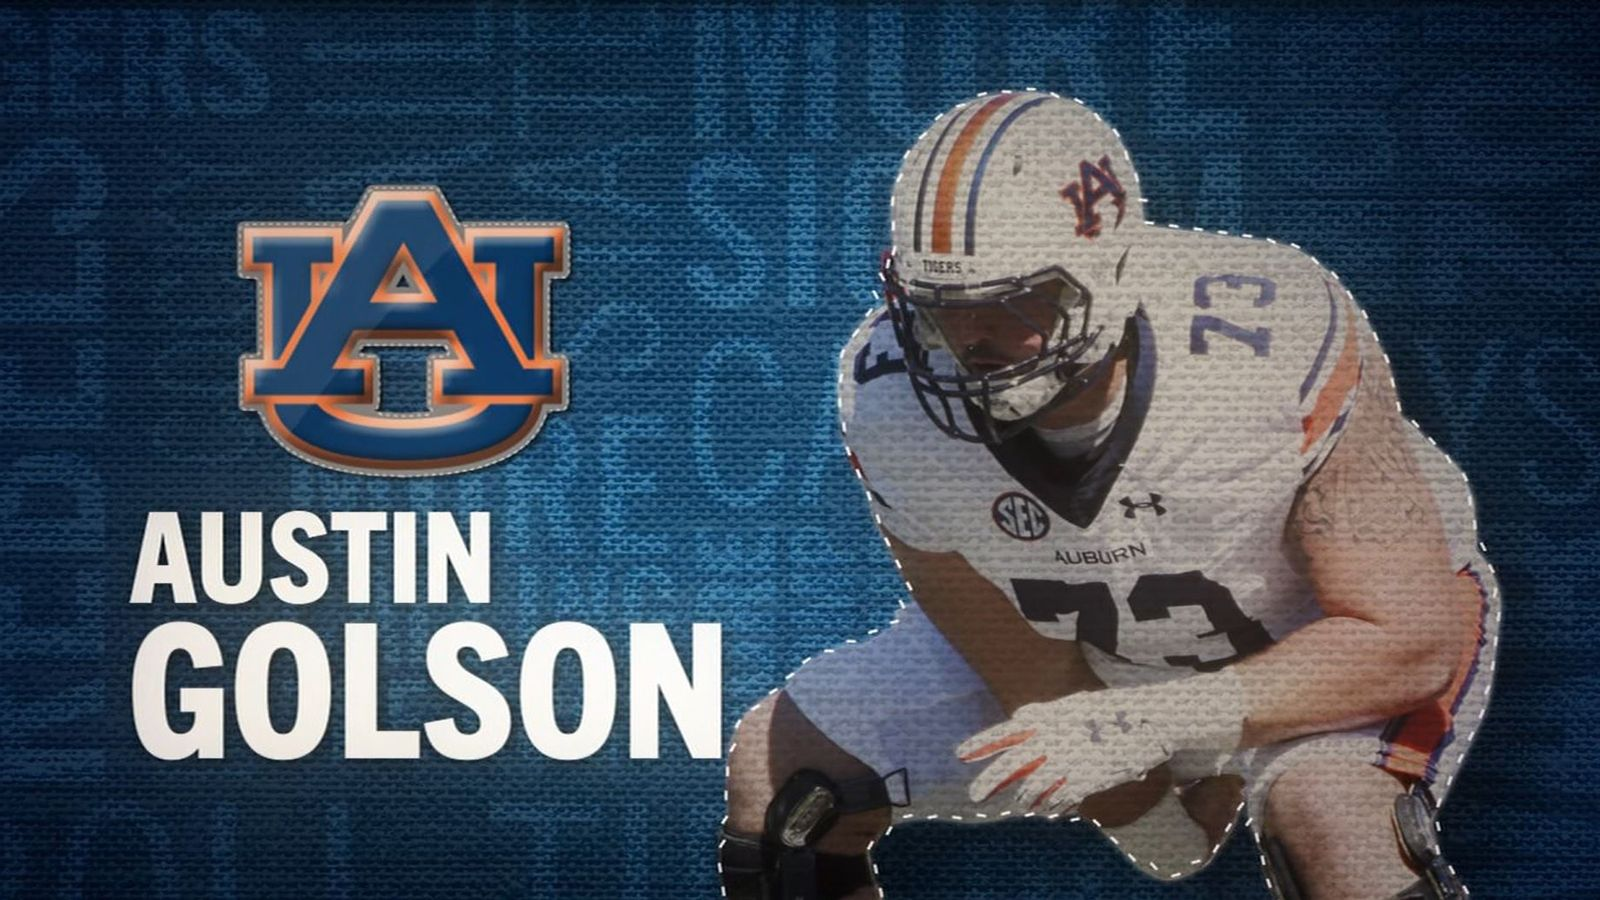 I am the SEC: Auburn's Austin Golson